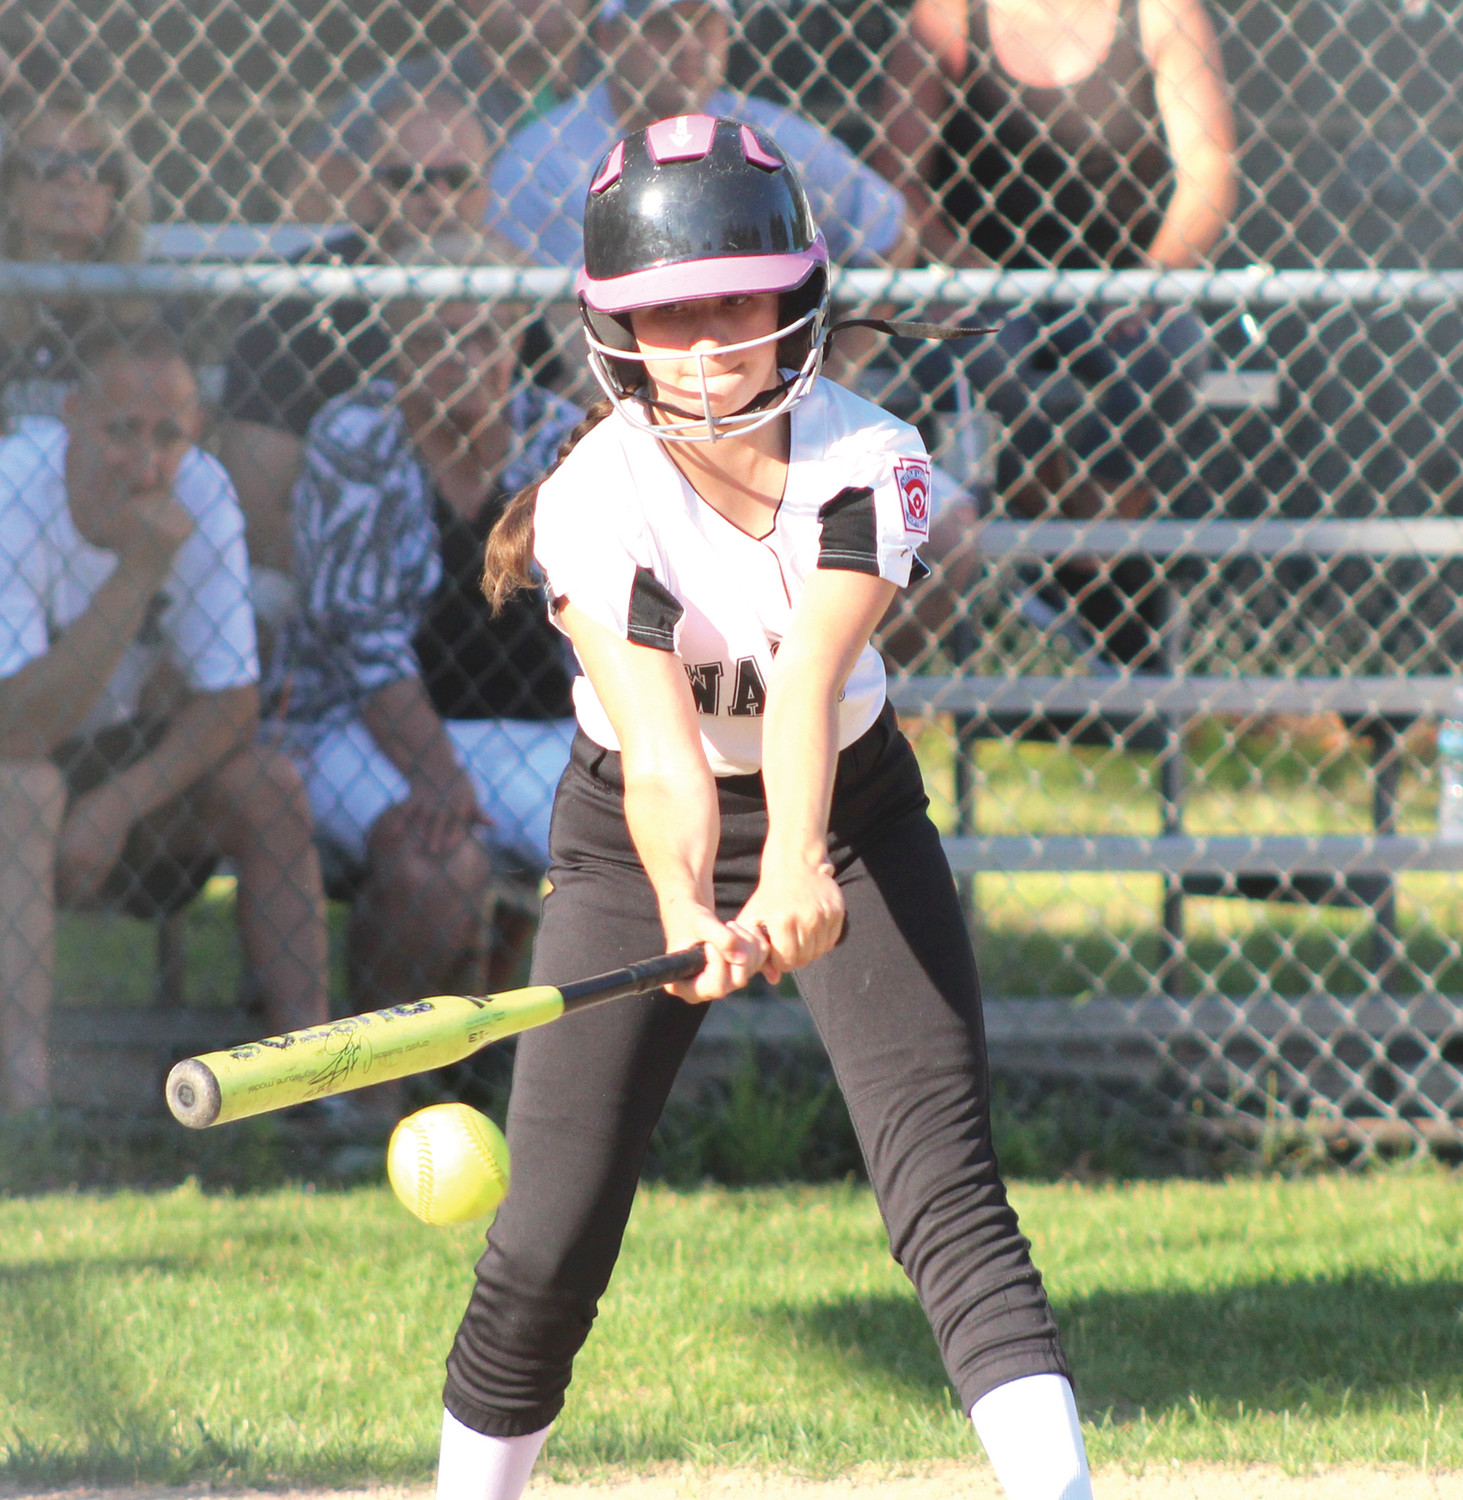 Michelle Maron drives the ball down the first base line against Coventry.